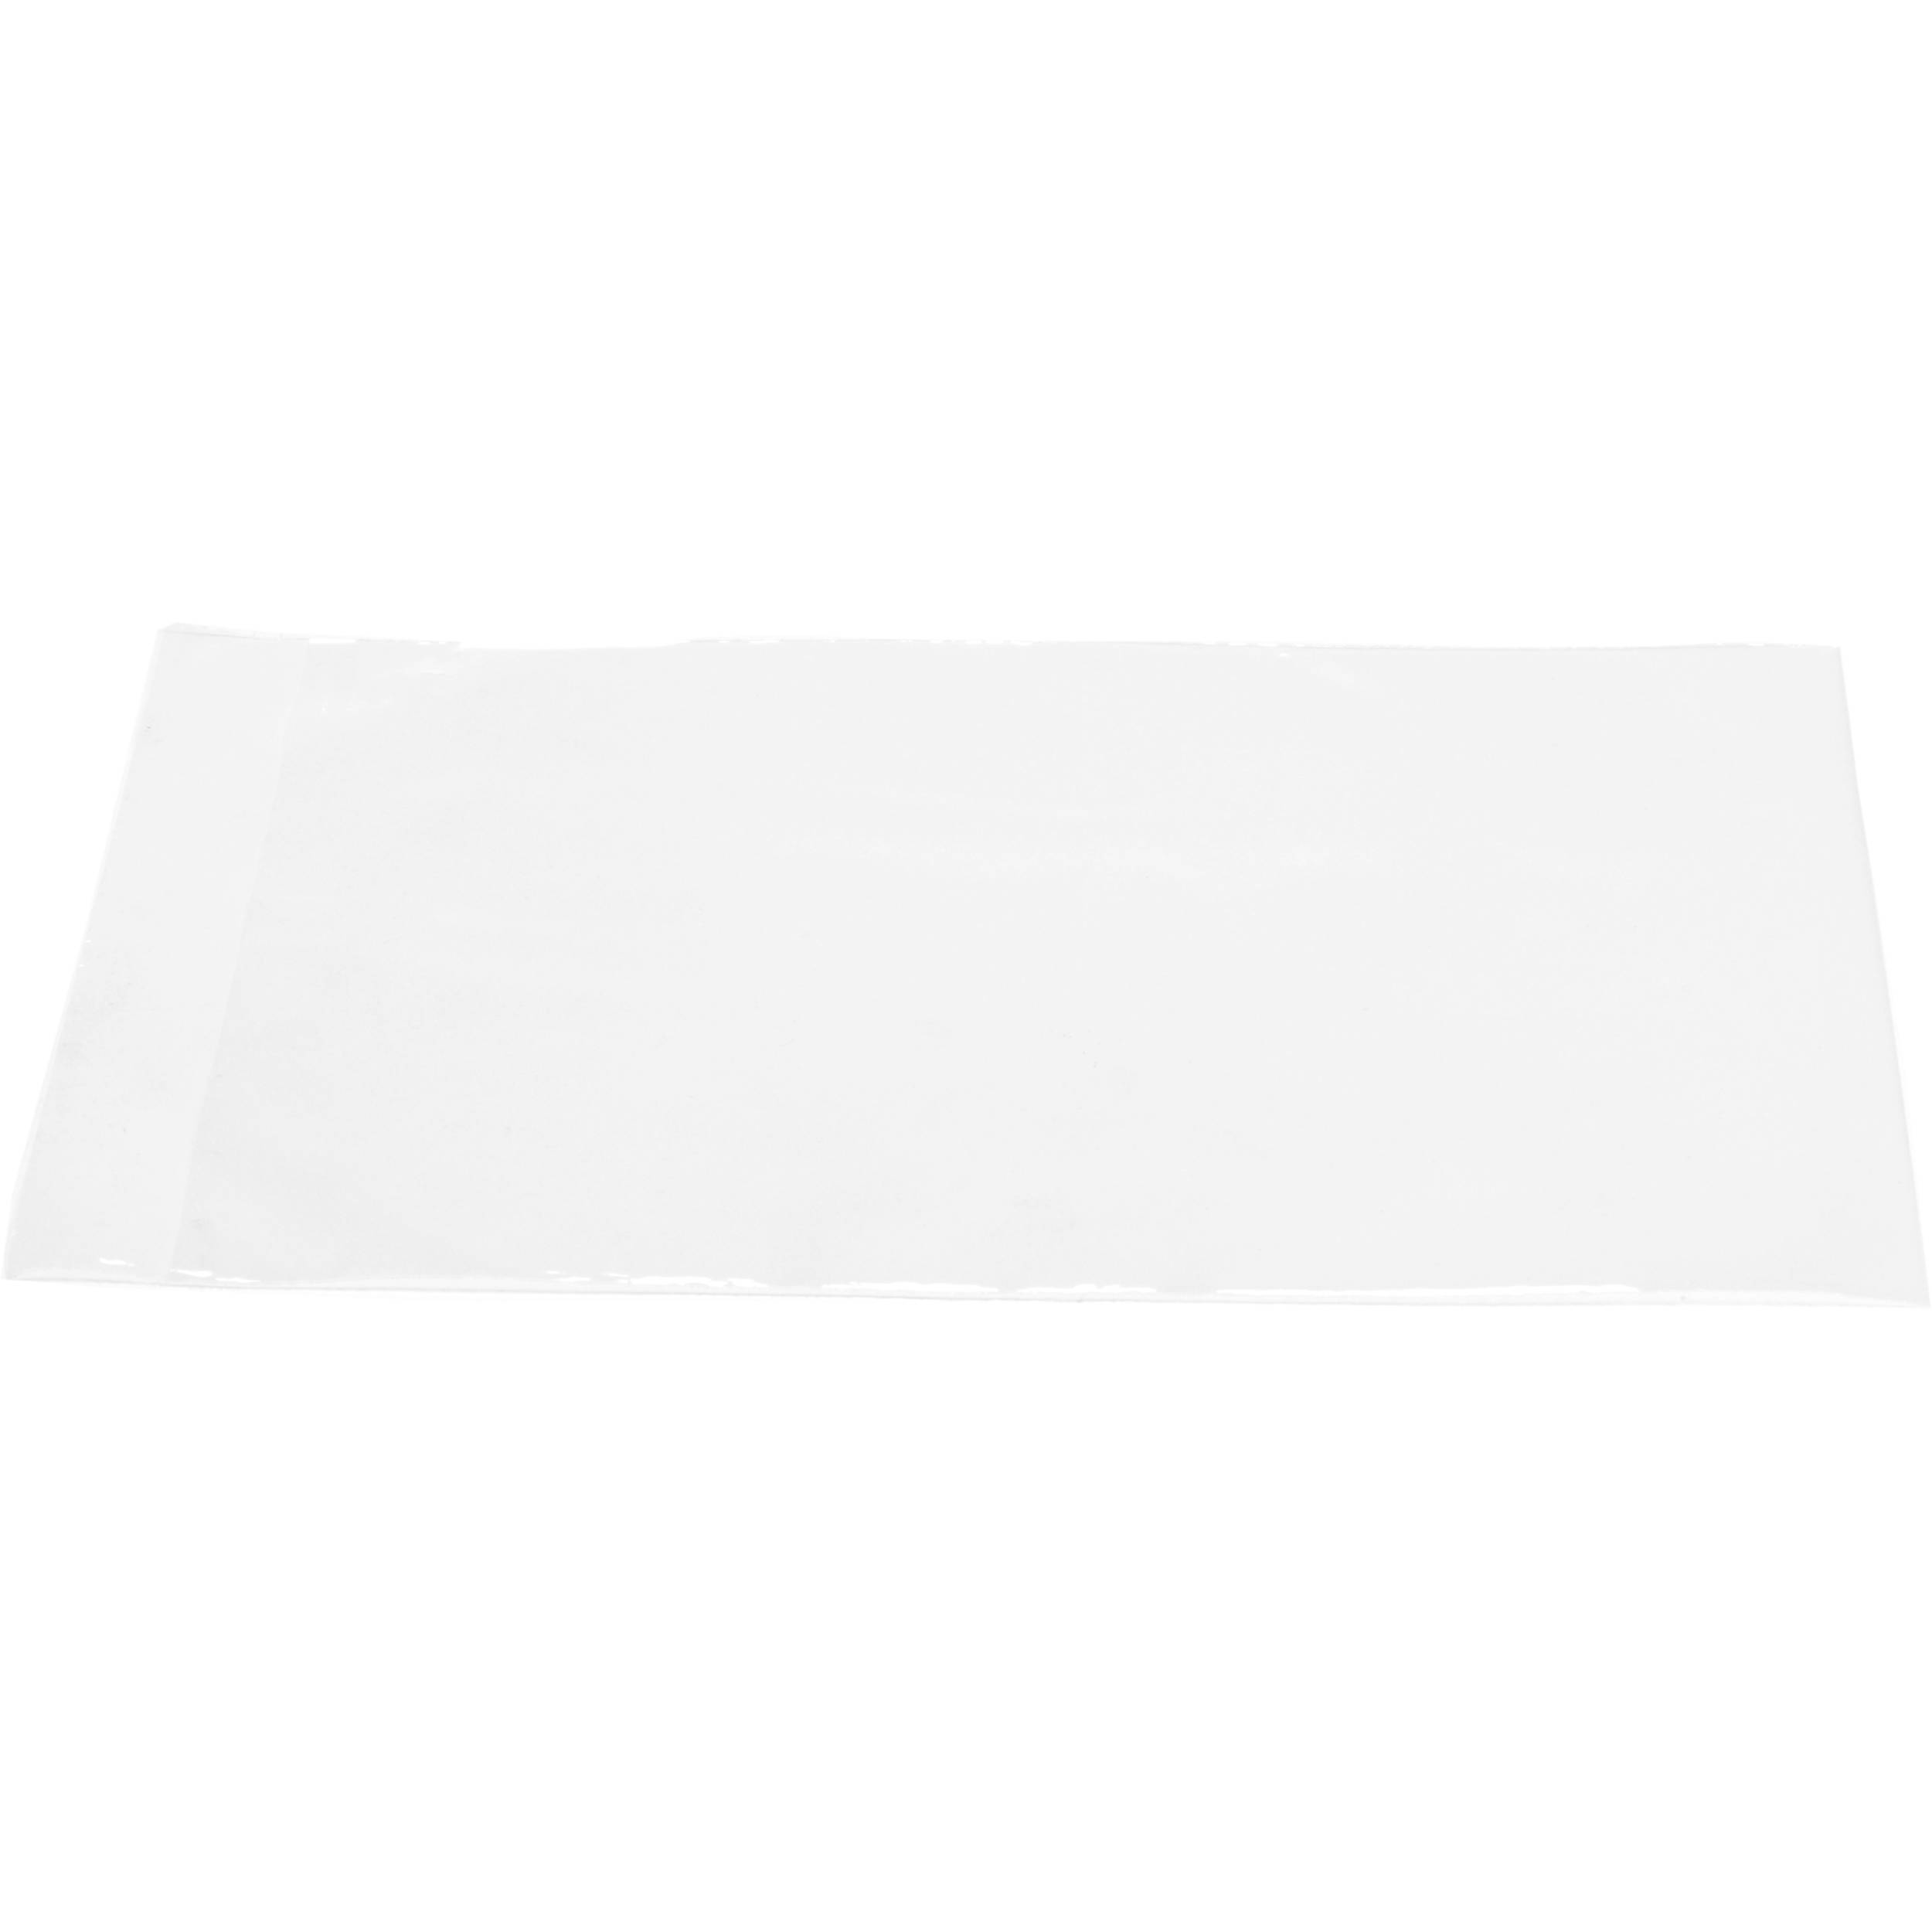 Archival Methods Polyethylene Bags With 1 Flap For Prints 16 3 X 20 25